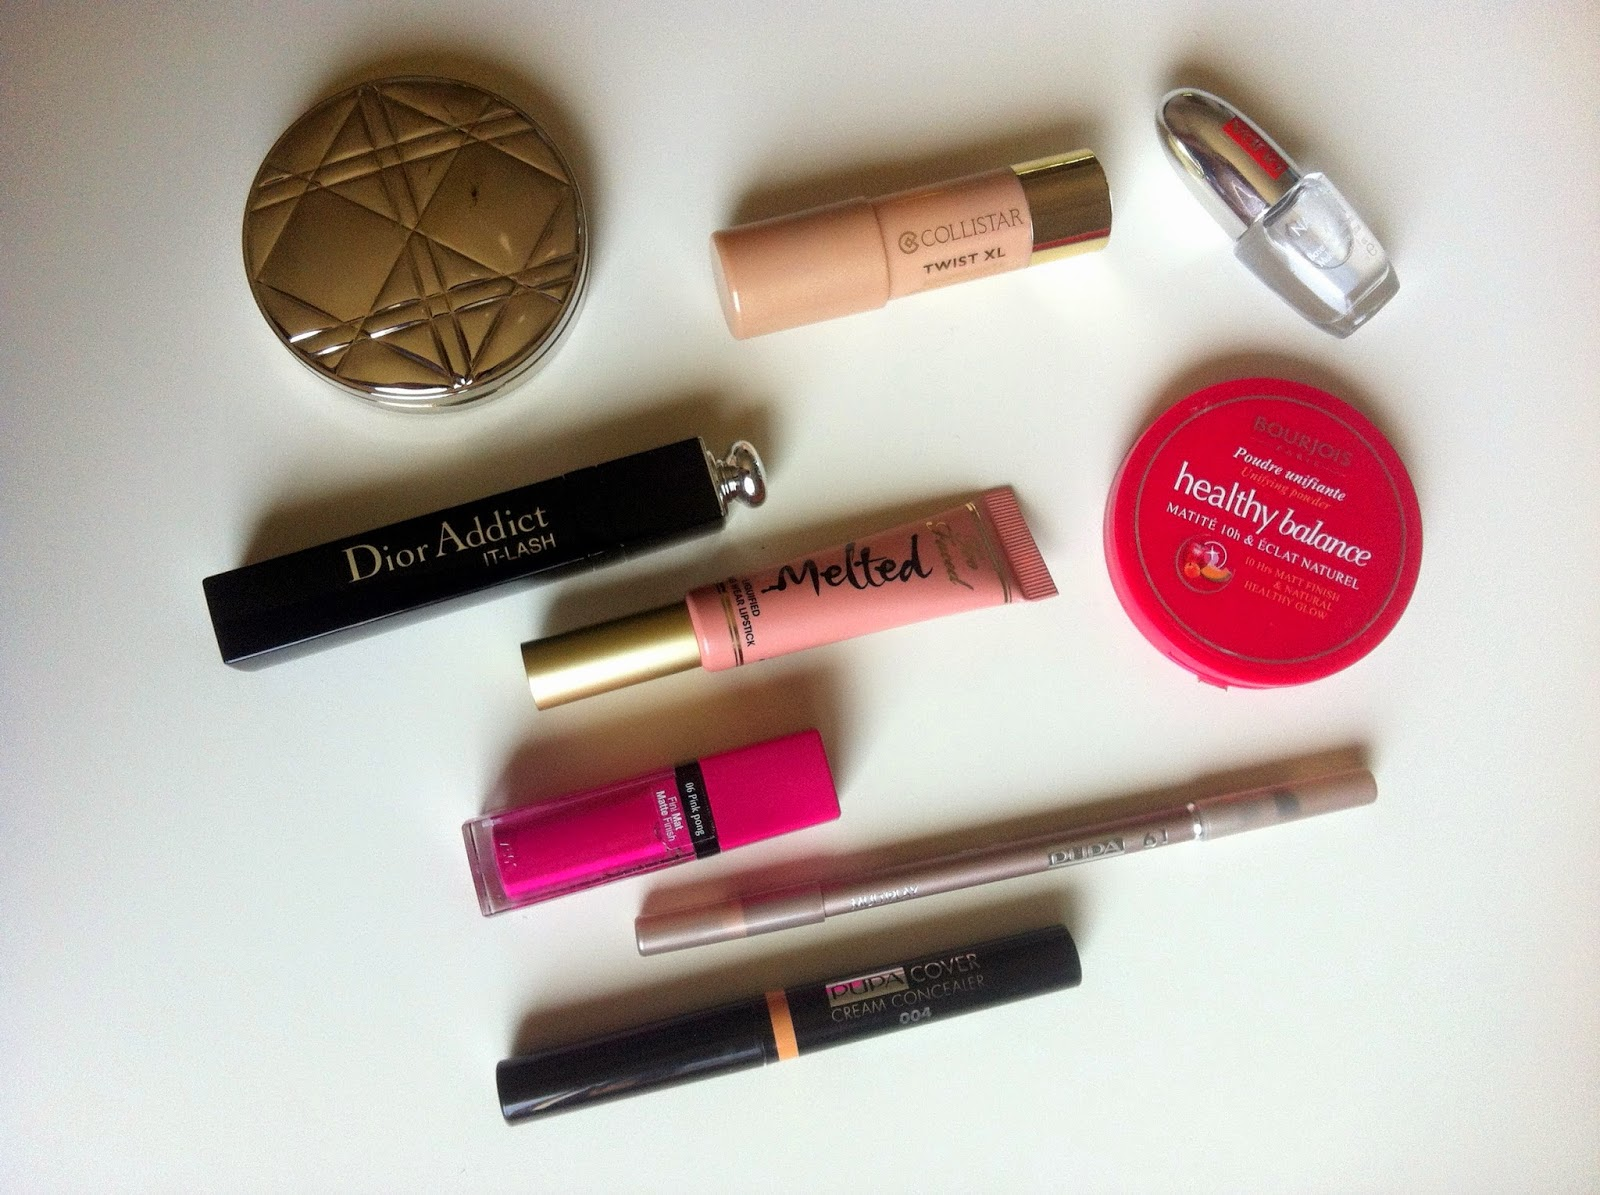 dior it lash mascara, bourjois rouge velvet edition, pupa cover cream concealer, pupa multiplay, pupa nail care 7 in 1, collistar twist xl illuminante, bourjois healthy balance compact powder, too faced melted, diorskin nude tan matte